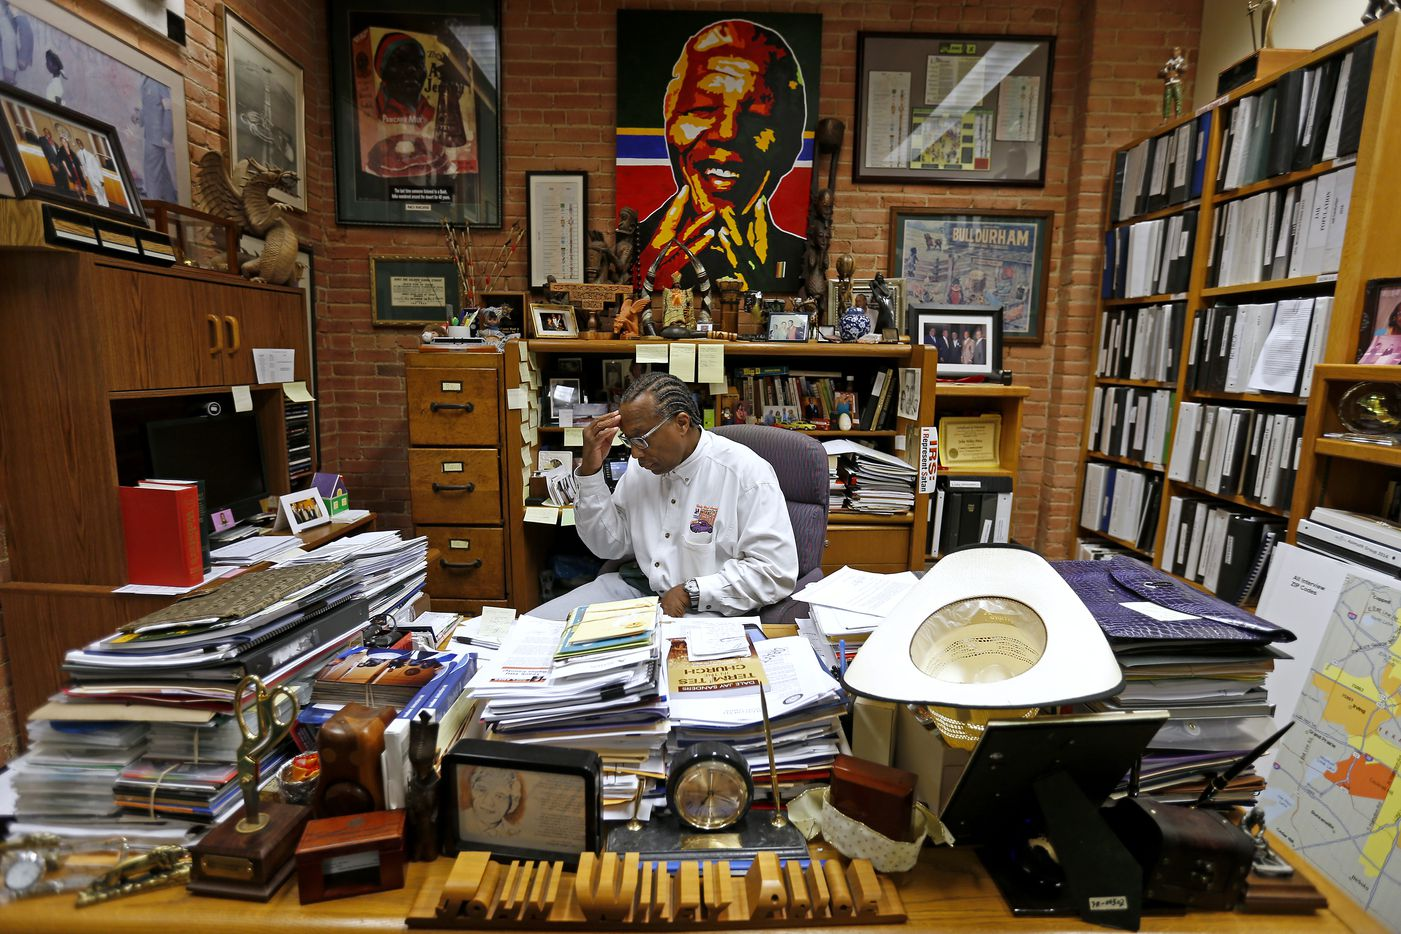 Commissioner John Wiley Price works in his office in June 2016. He says he reads every document that comes across his desk.